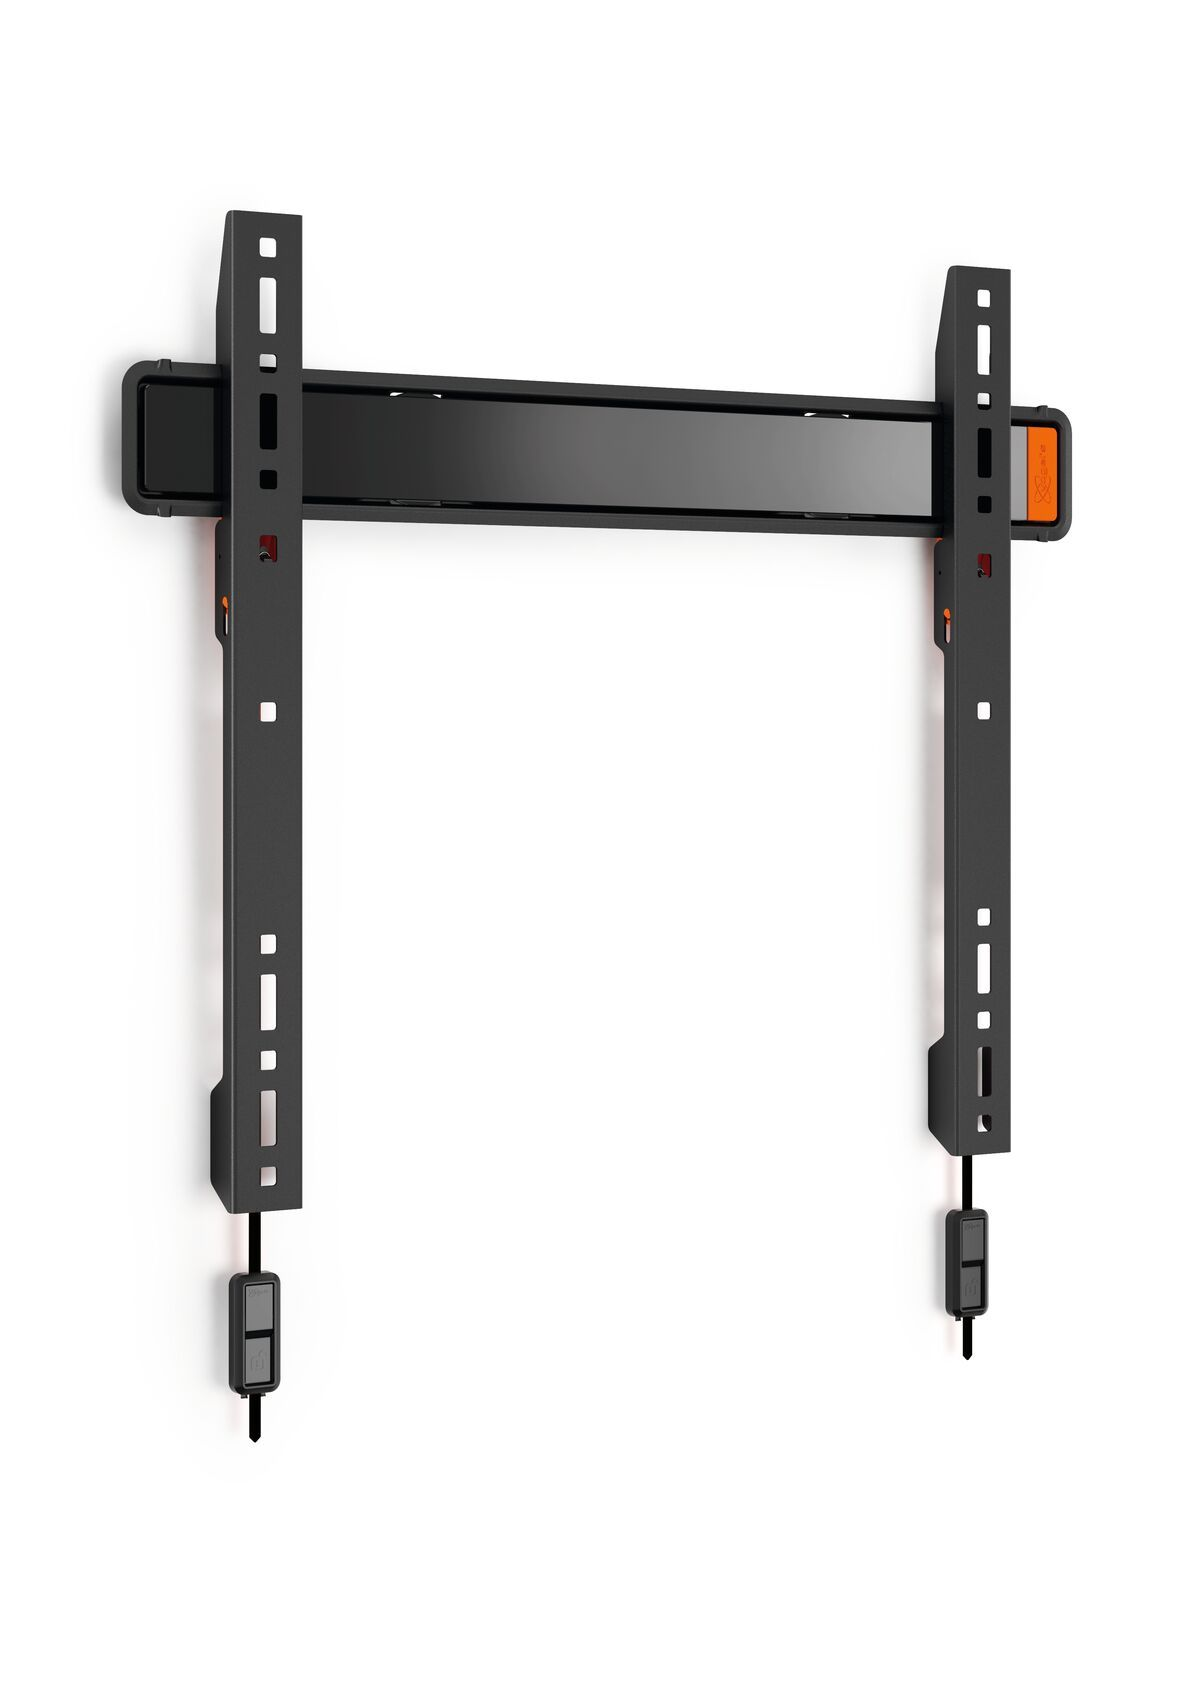 Vogel's WALL 2205 Fixed TV Wall Mount - Suitable for 32 up to 55 inch TVs up to kg - Product